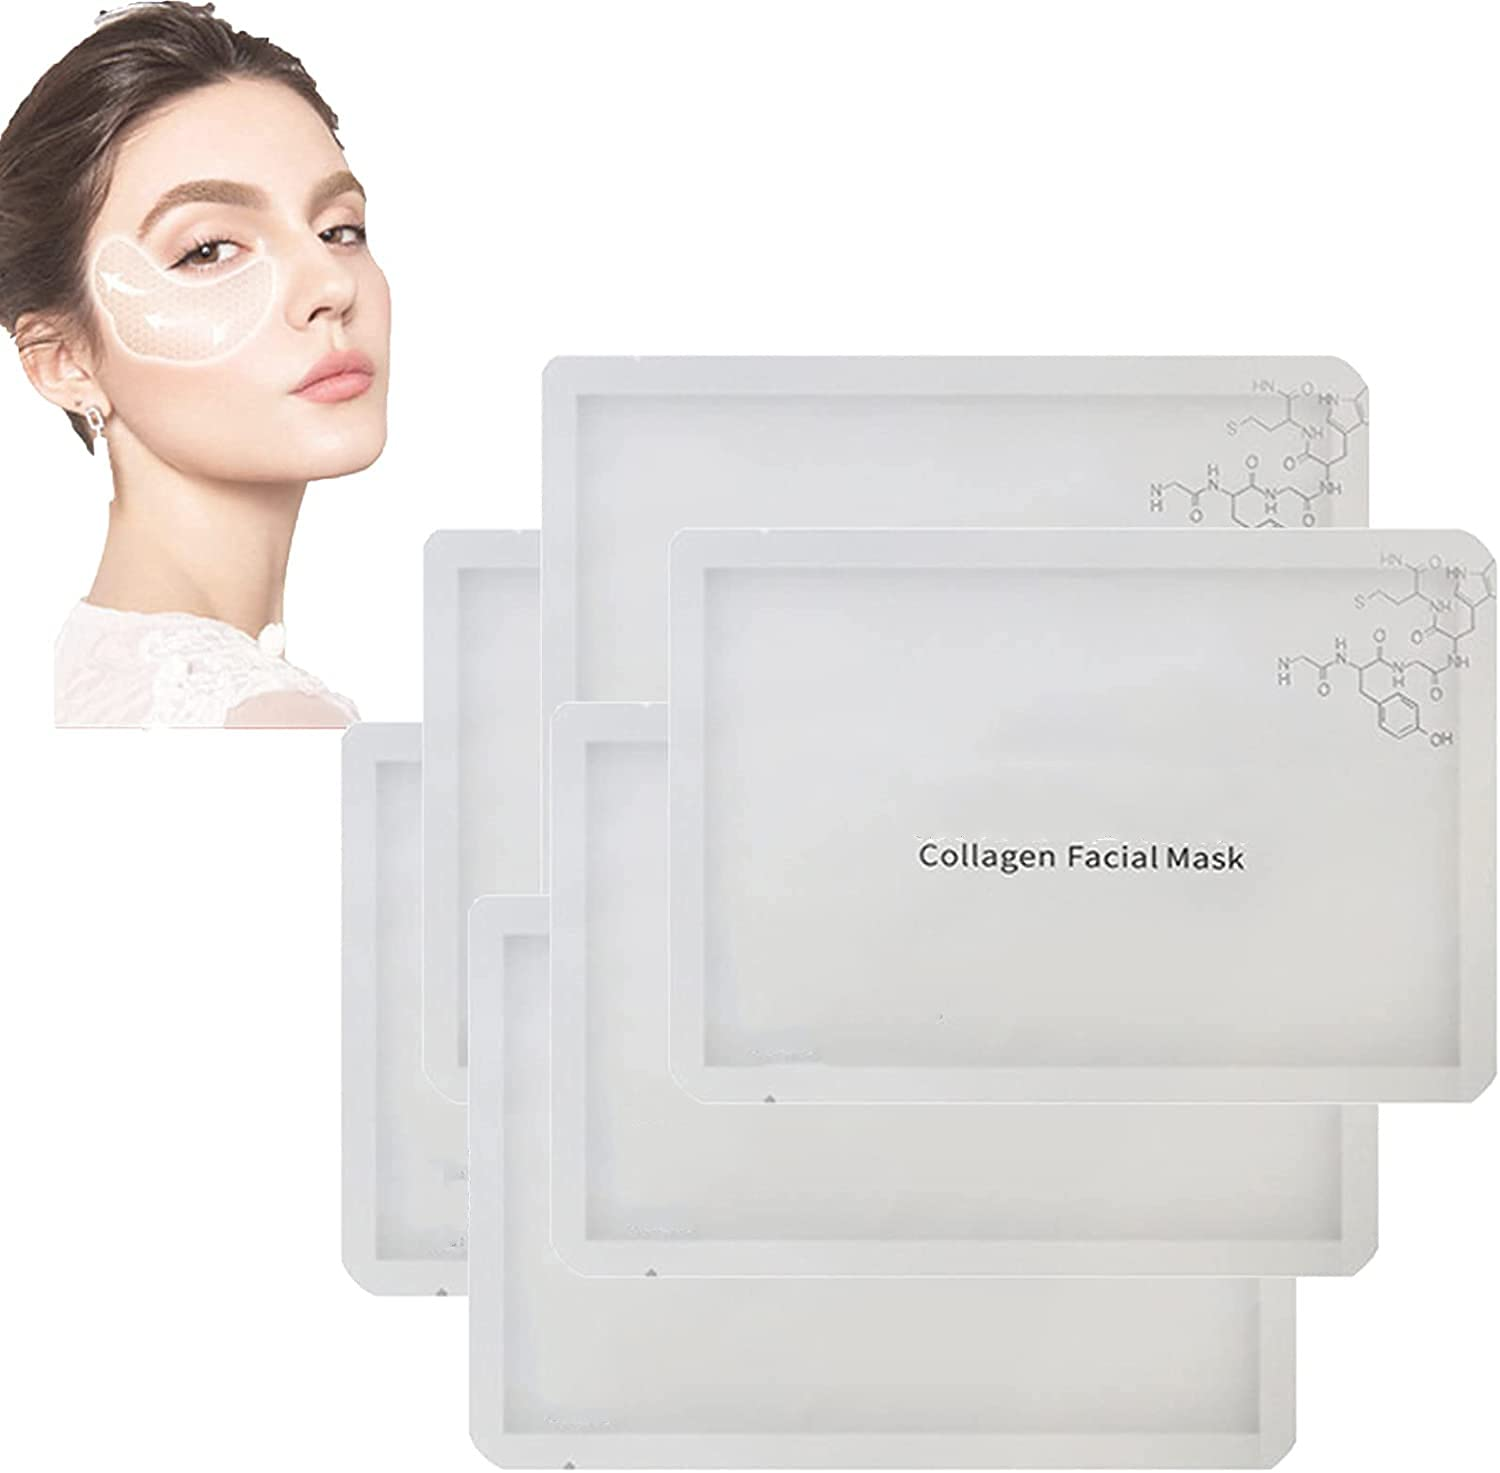 Wrinkless Challenge the lowest Japan Maker New price of Japan ☆ Facelifting Mas Microcrystalline Care Forehe Eye Mask